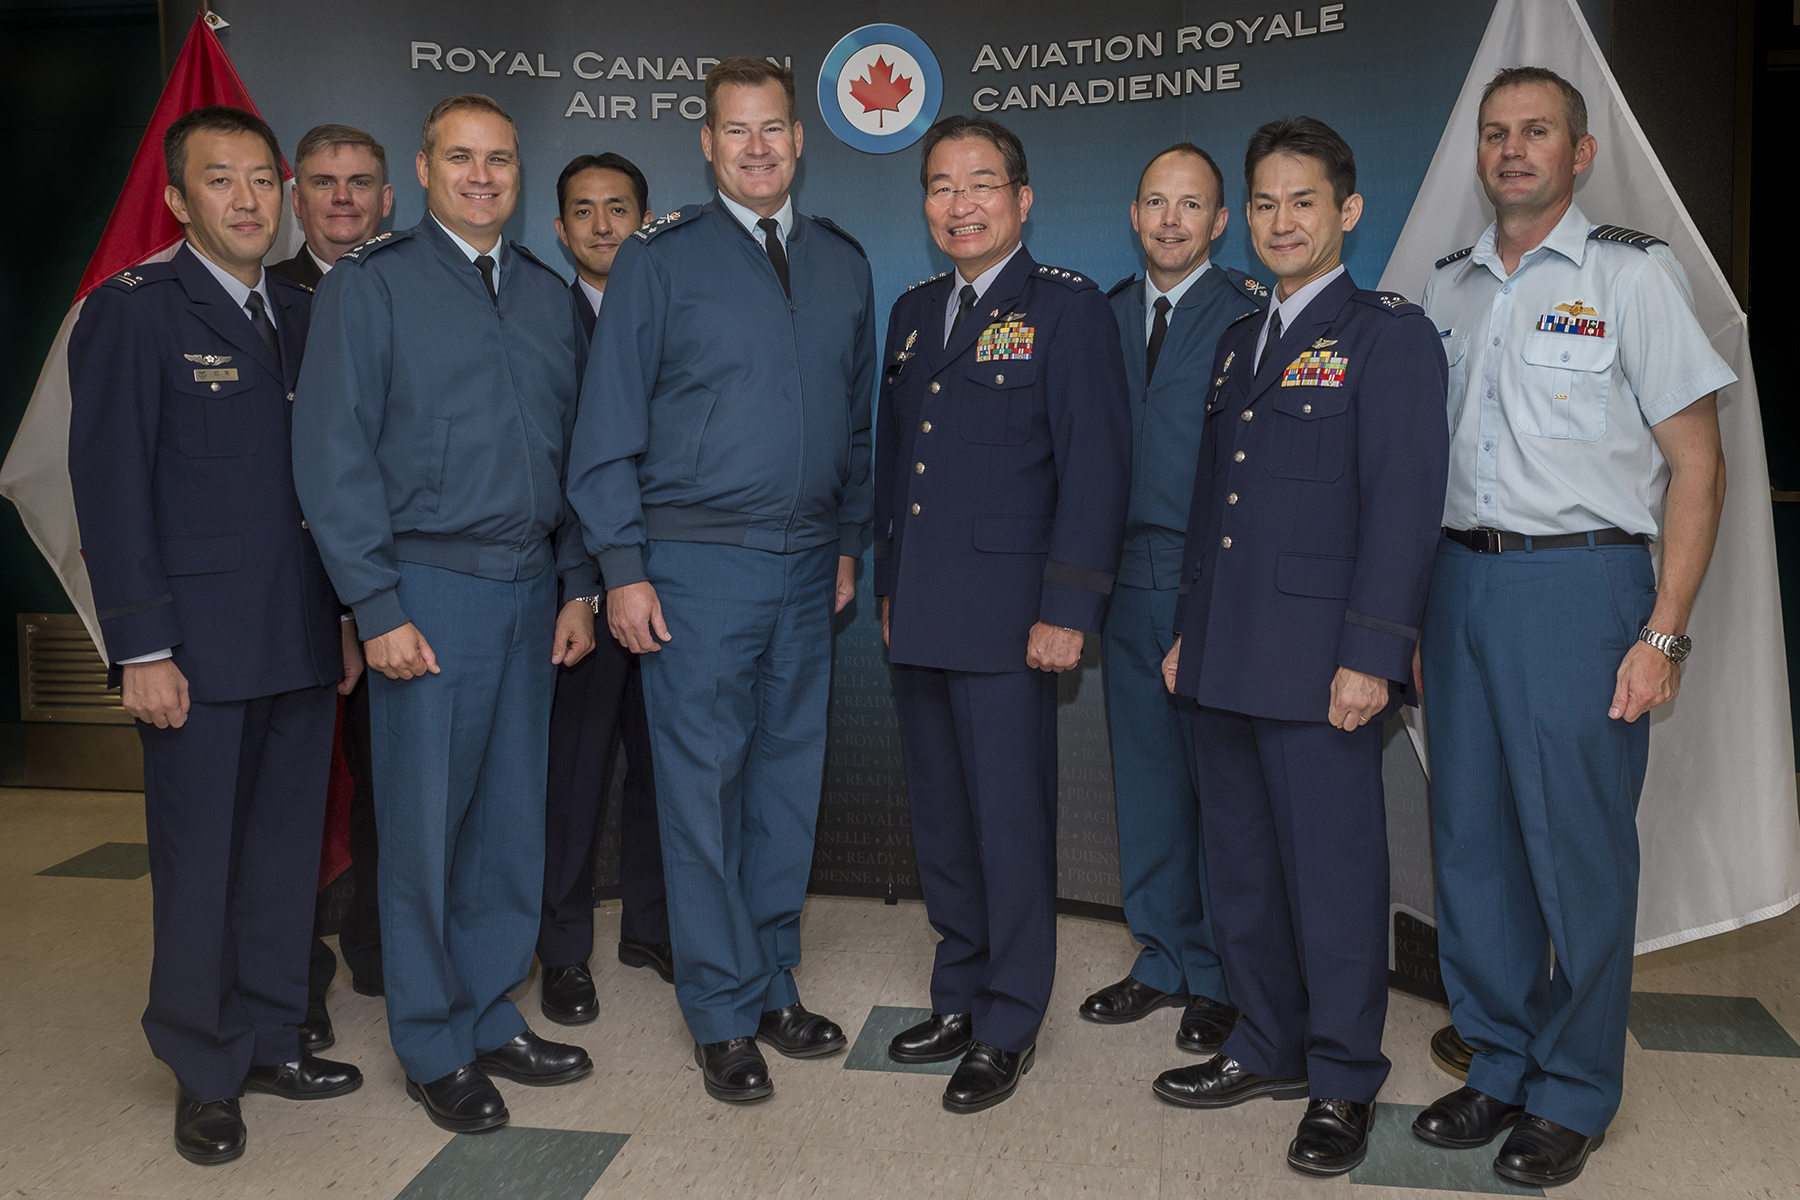 From left, Colonel Dan Suzuki, Air Attaché to the Embassy of Japan in the U.S.; Captain(N) Chris Dickinson, Canadian Defence Attaché to Japan; Major-General Blaise Frawley, Deputy Commander of the RCAF; Lieutenant Colonel Takehiro Lio, Staff, Defence Plans/Policies and Programs Division, Air Staff Office, Japan Air Self-Defense Force (JASDF); Lieutenant-General Michael Hood, Commander of the RCAF; General Yoshiyuki Sugiyama, Chief of Staff, Koku-Jieitai (JASDF); Major-General Alain Pelletier, Chief Fighter Capability, RCAF; Colonel Yasuhiro Ogawa, Deputy Director, Defence Plans/Policies and Programs Division, Air Staff Office (JASDF); and Colonel Christopher McKenna, Director of Air Plans, RCAF, stand for a photograph on the occasion of General Sugiyama's visit to National Defence Headquarters in Ottawa, Ontario. PHOTO: Corporal Alana Morin, FA03-2017-122-014